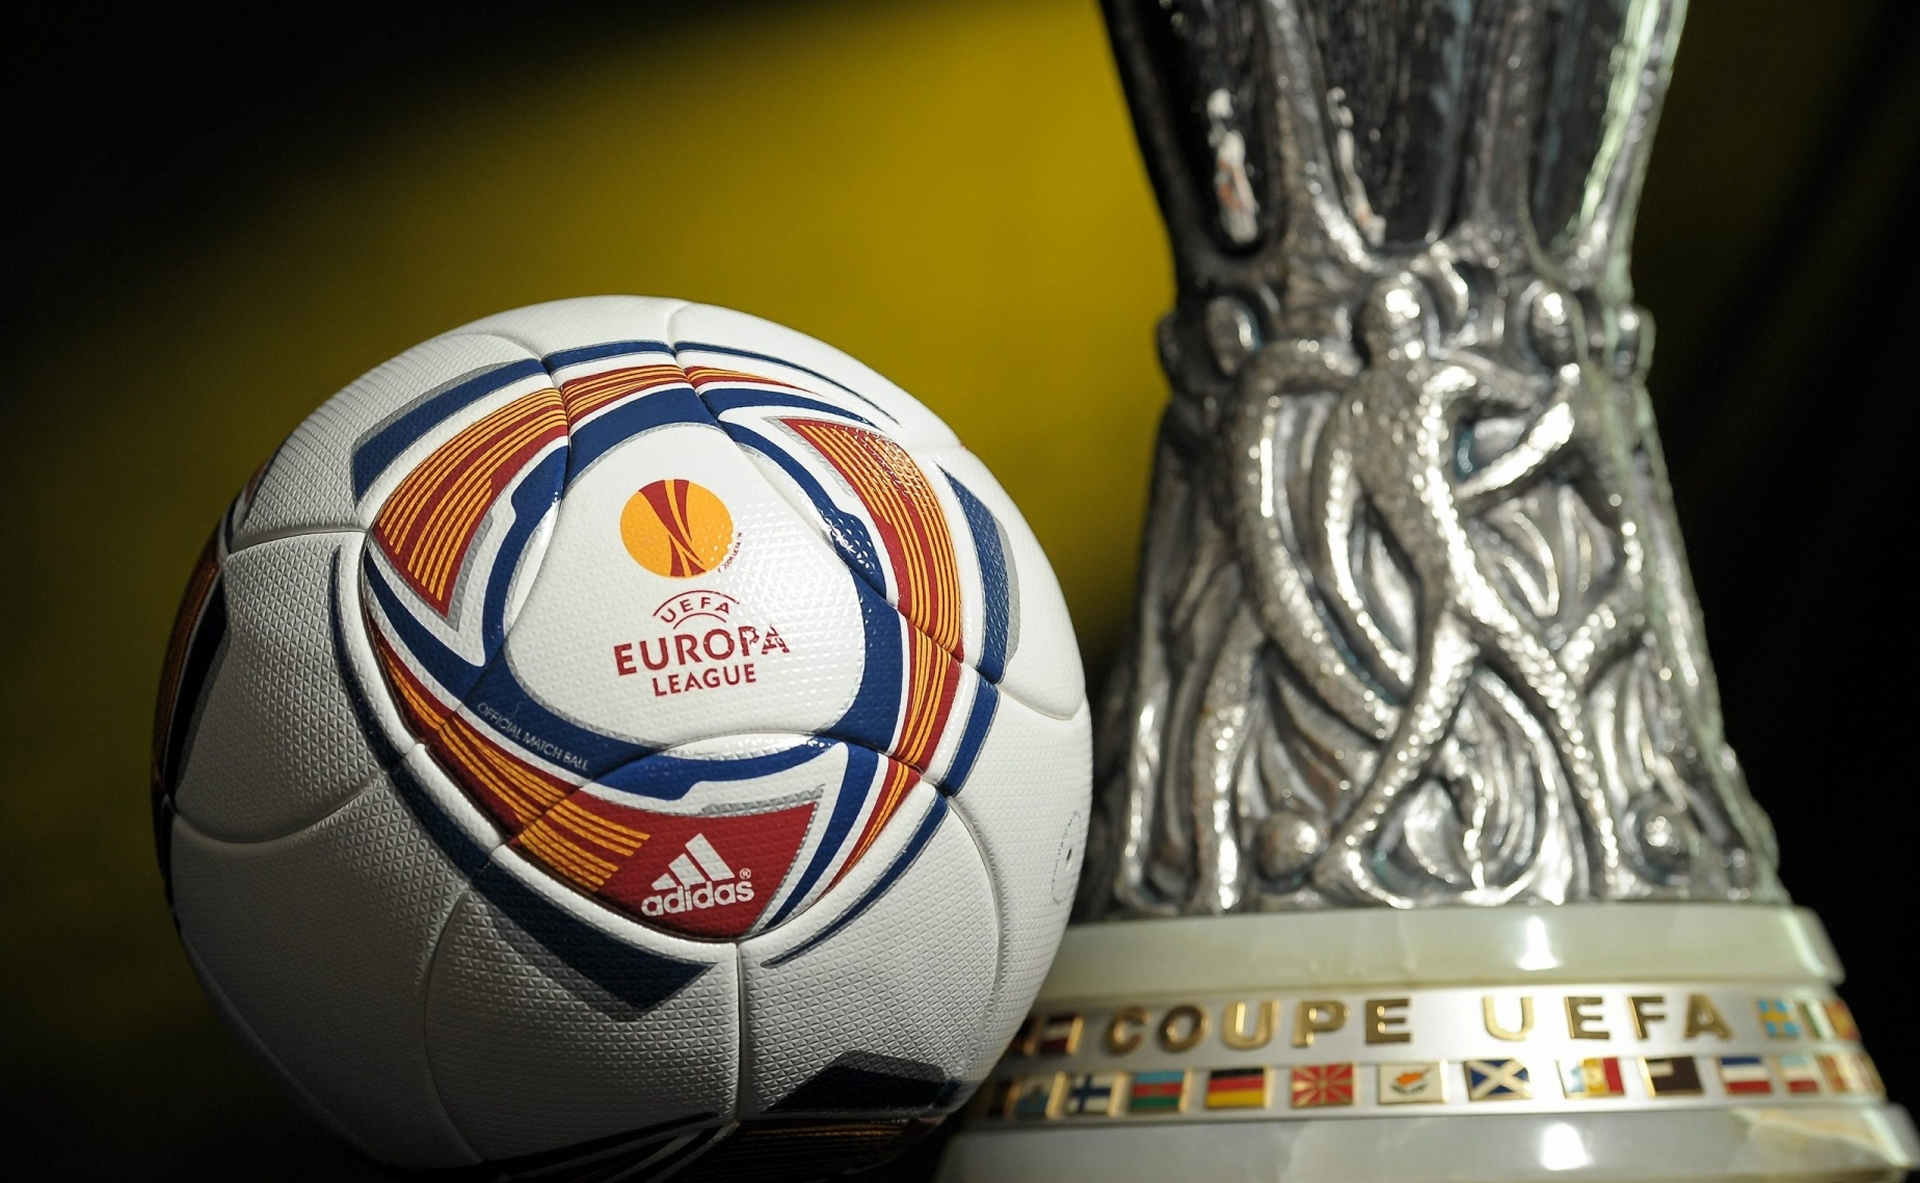 Further information on the Europa League draw